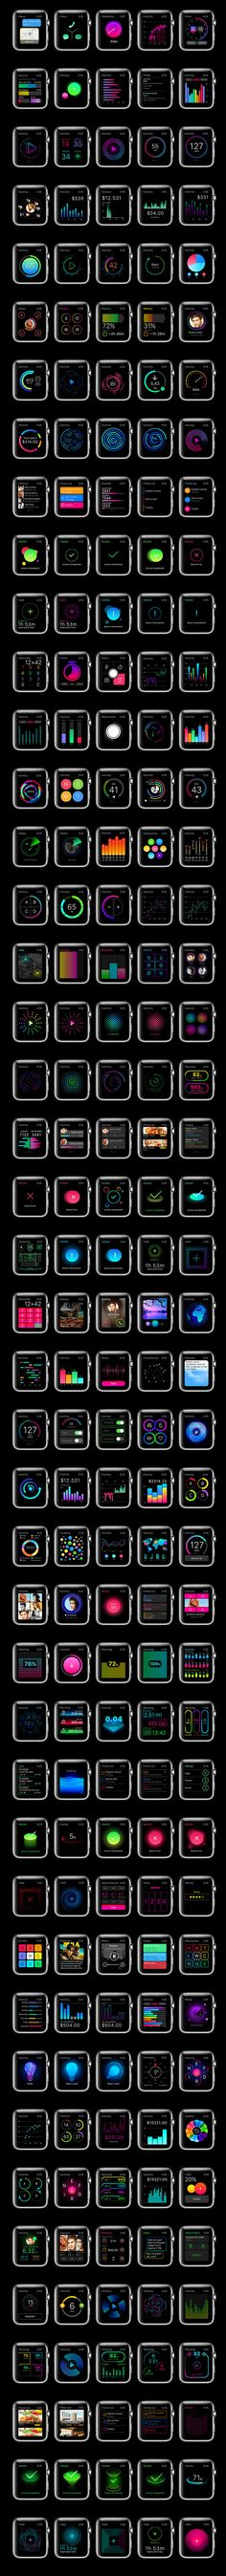 Apple Watch UI Kit